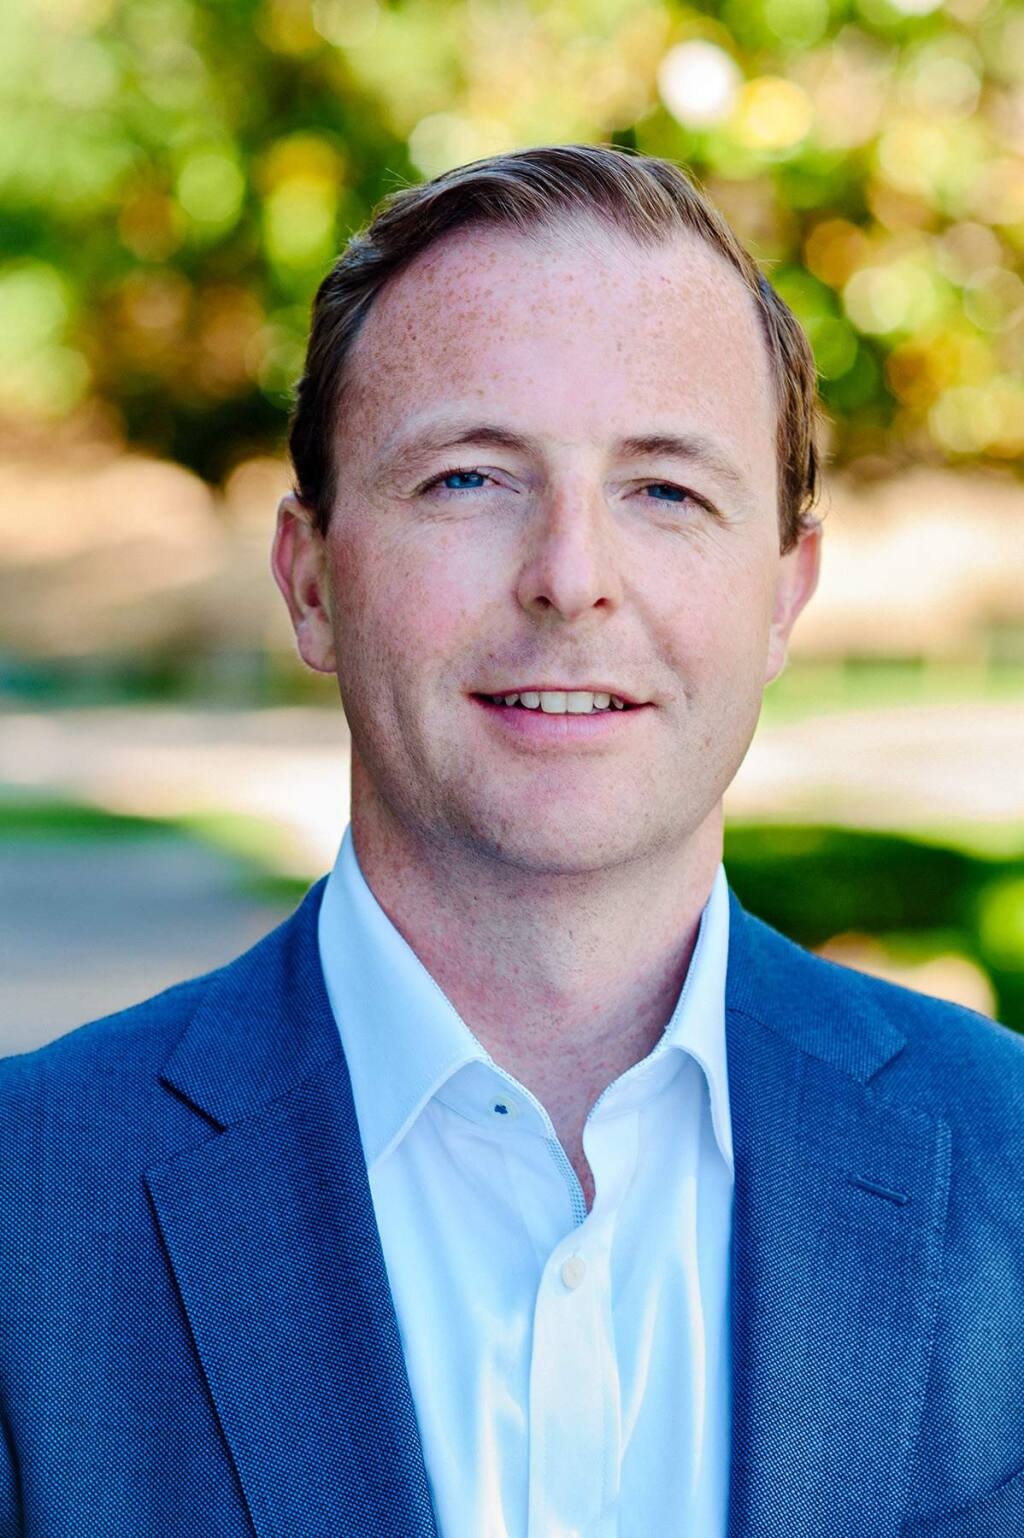 Marshall Graves, 37, senior commercial banking officer and wine industry specialist, Bank of Marin, is a 2020 Forty Under 40 winner. (Richard Wheeler photo, 2017)